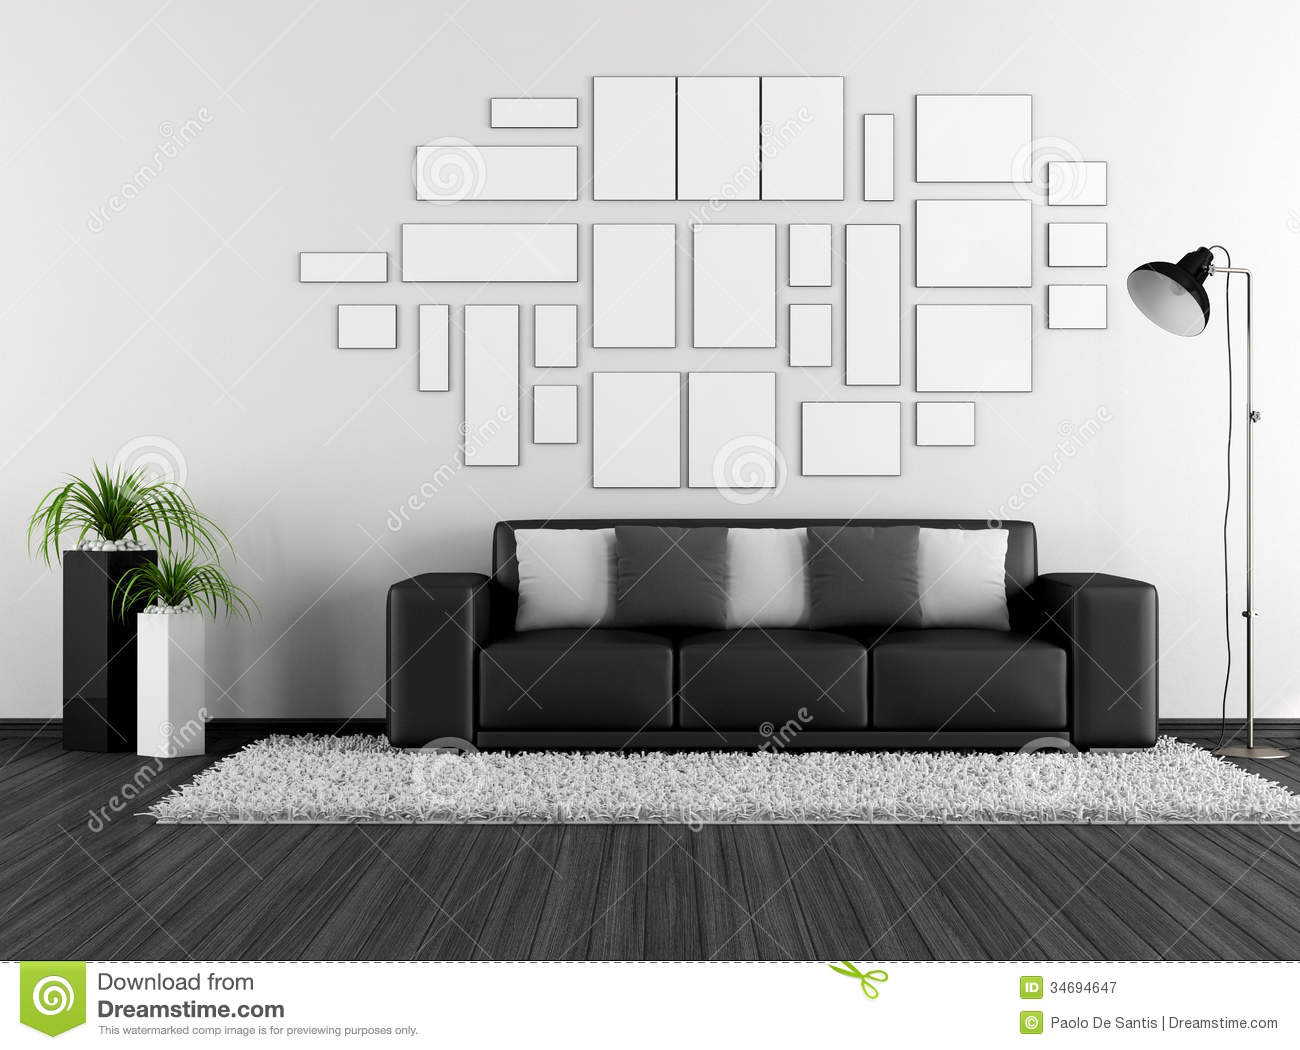 Paint colors for living room with black furniture - Black And White Living Room With Modern Couch And Empty Frame Royalty